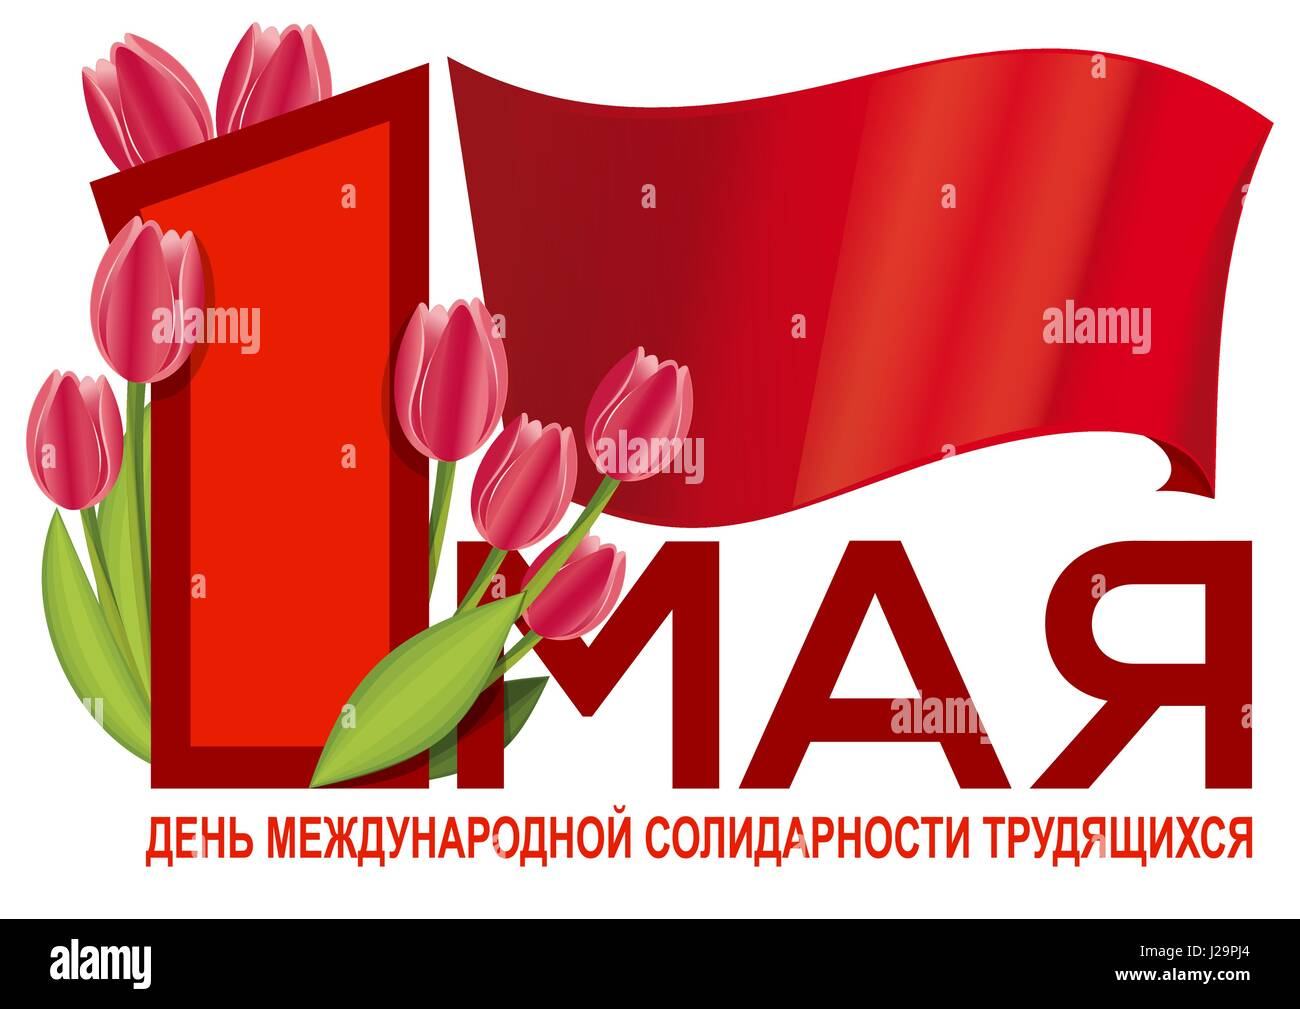 Poster design keywords - International Workers Day Greetings In Russian Poster Design With The Red Flag And A